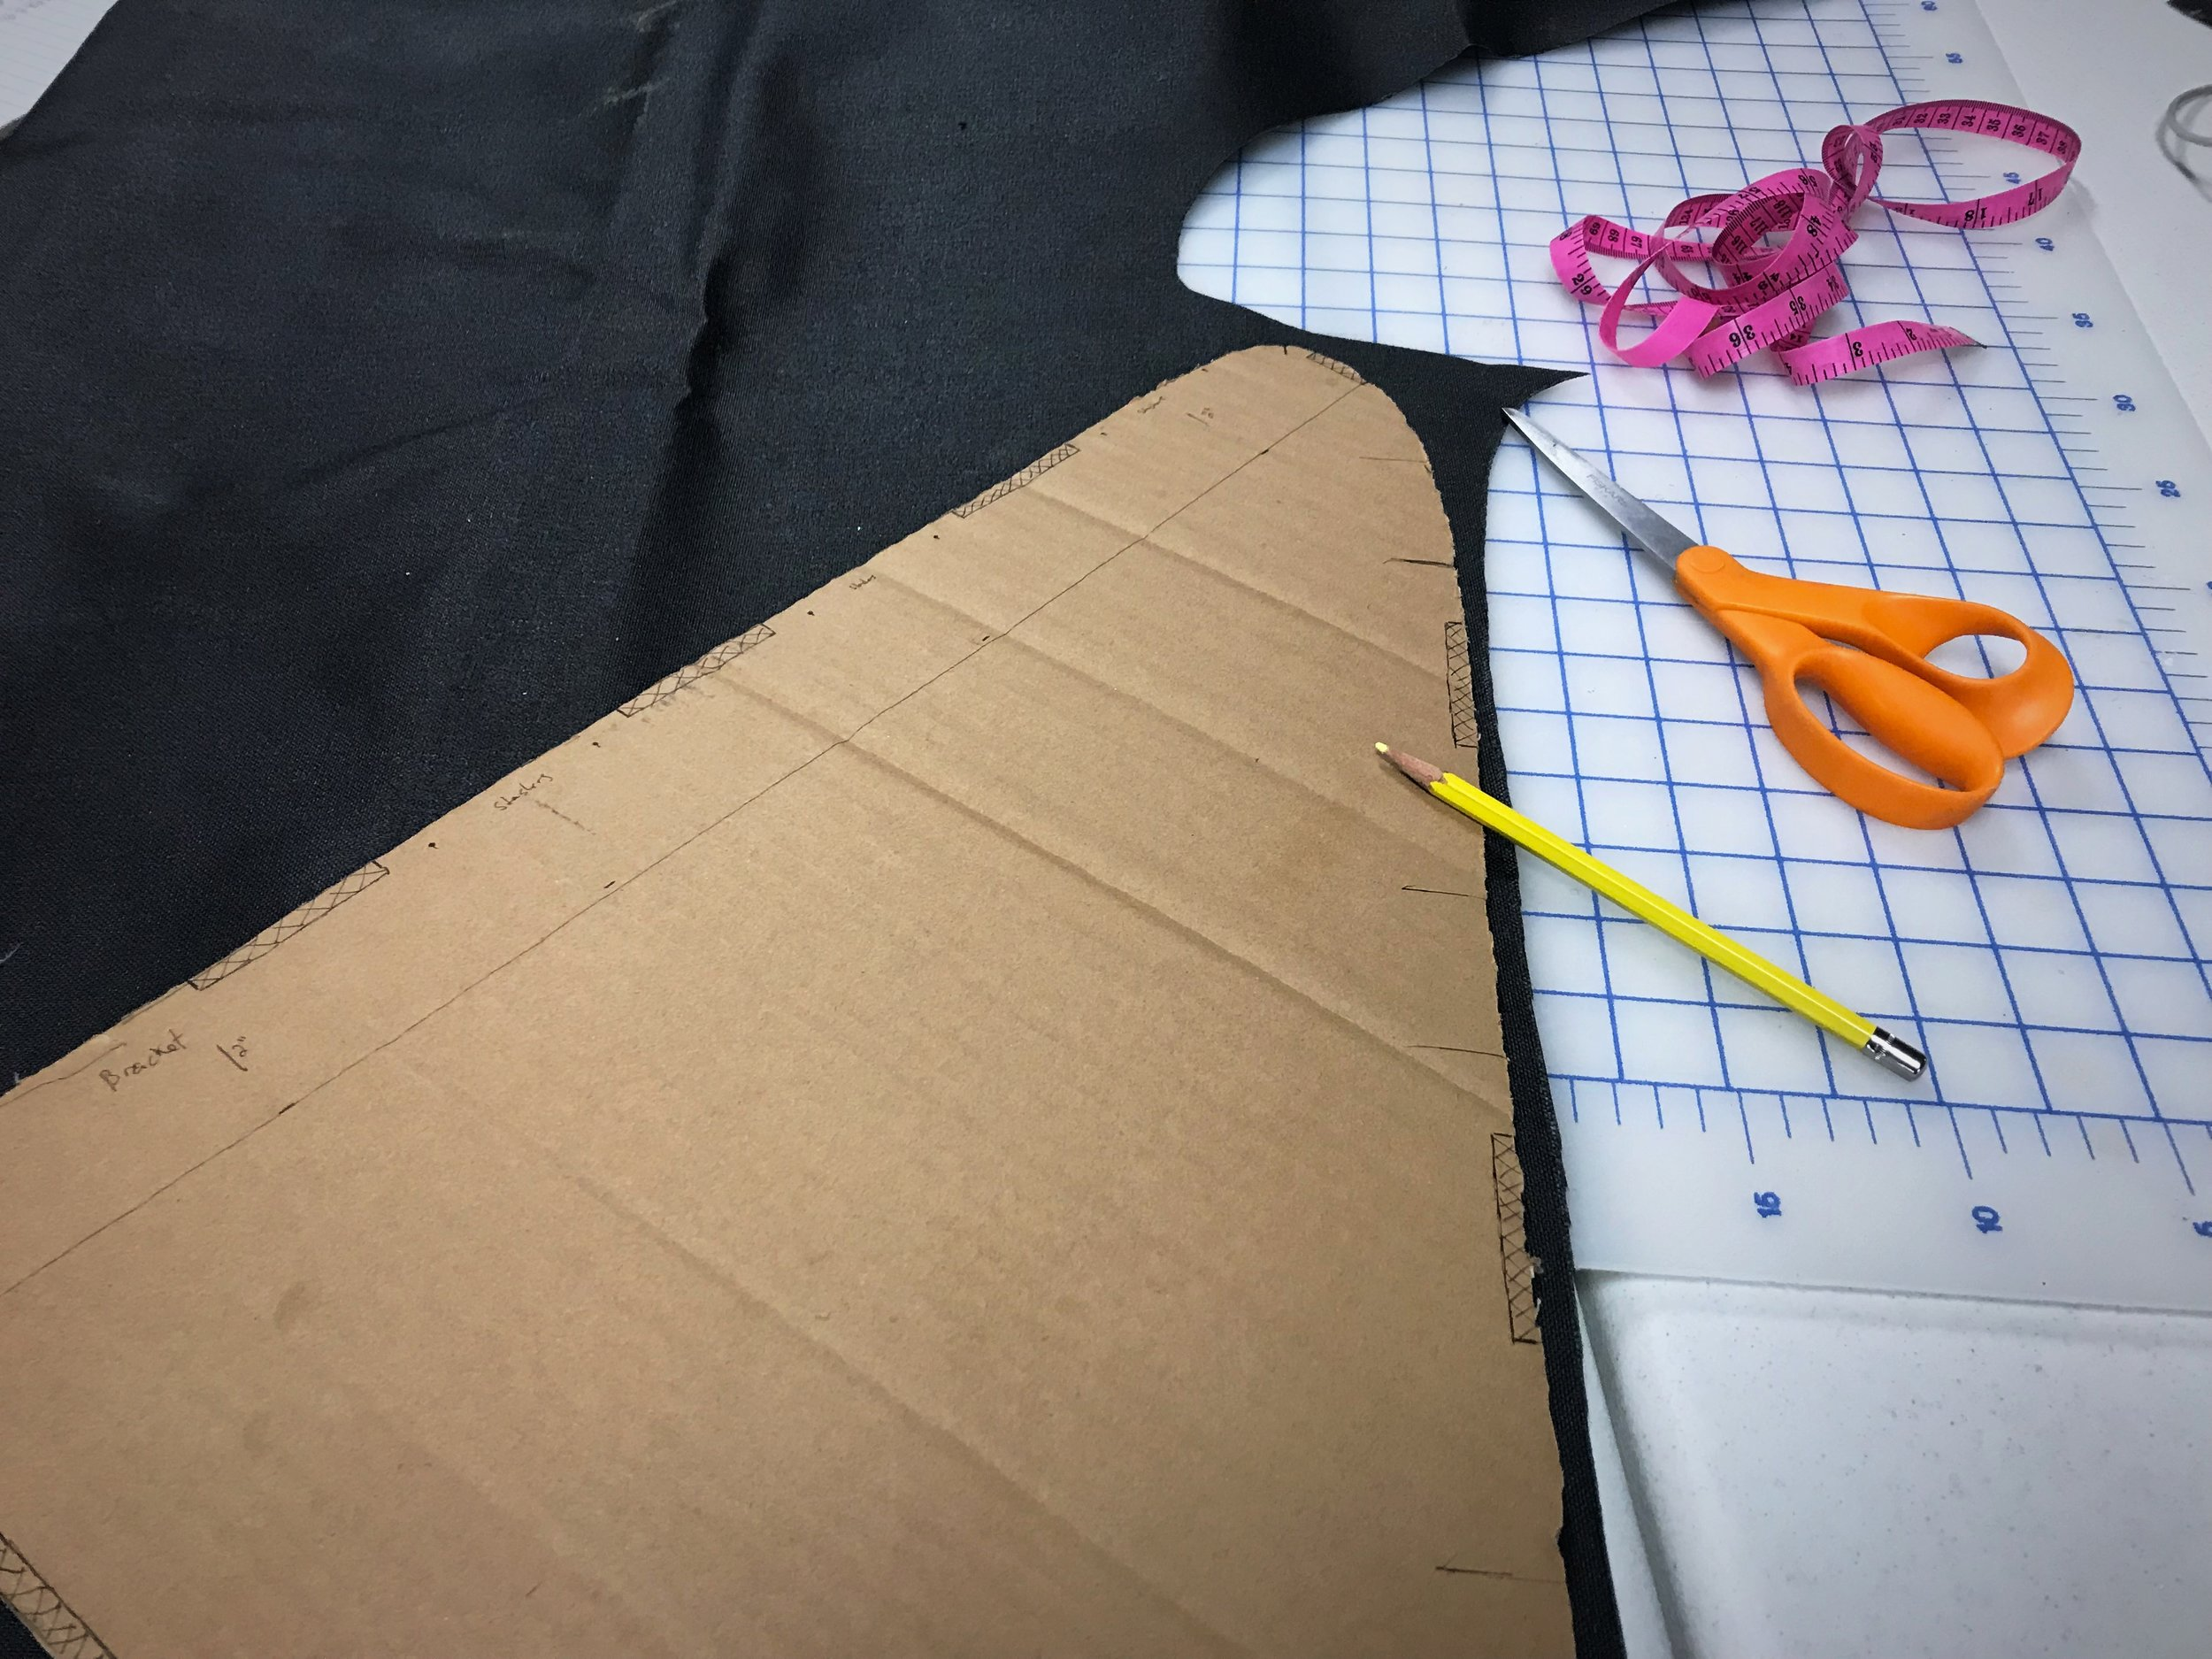 Trace the stencil you created onto your fabric, leaving a half inch buffer around the edge. On one side you will need to factor in extra space so that you have a seam allowance for your zipper.